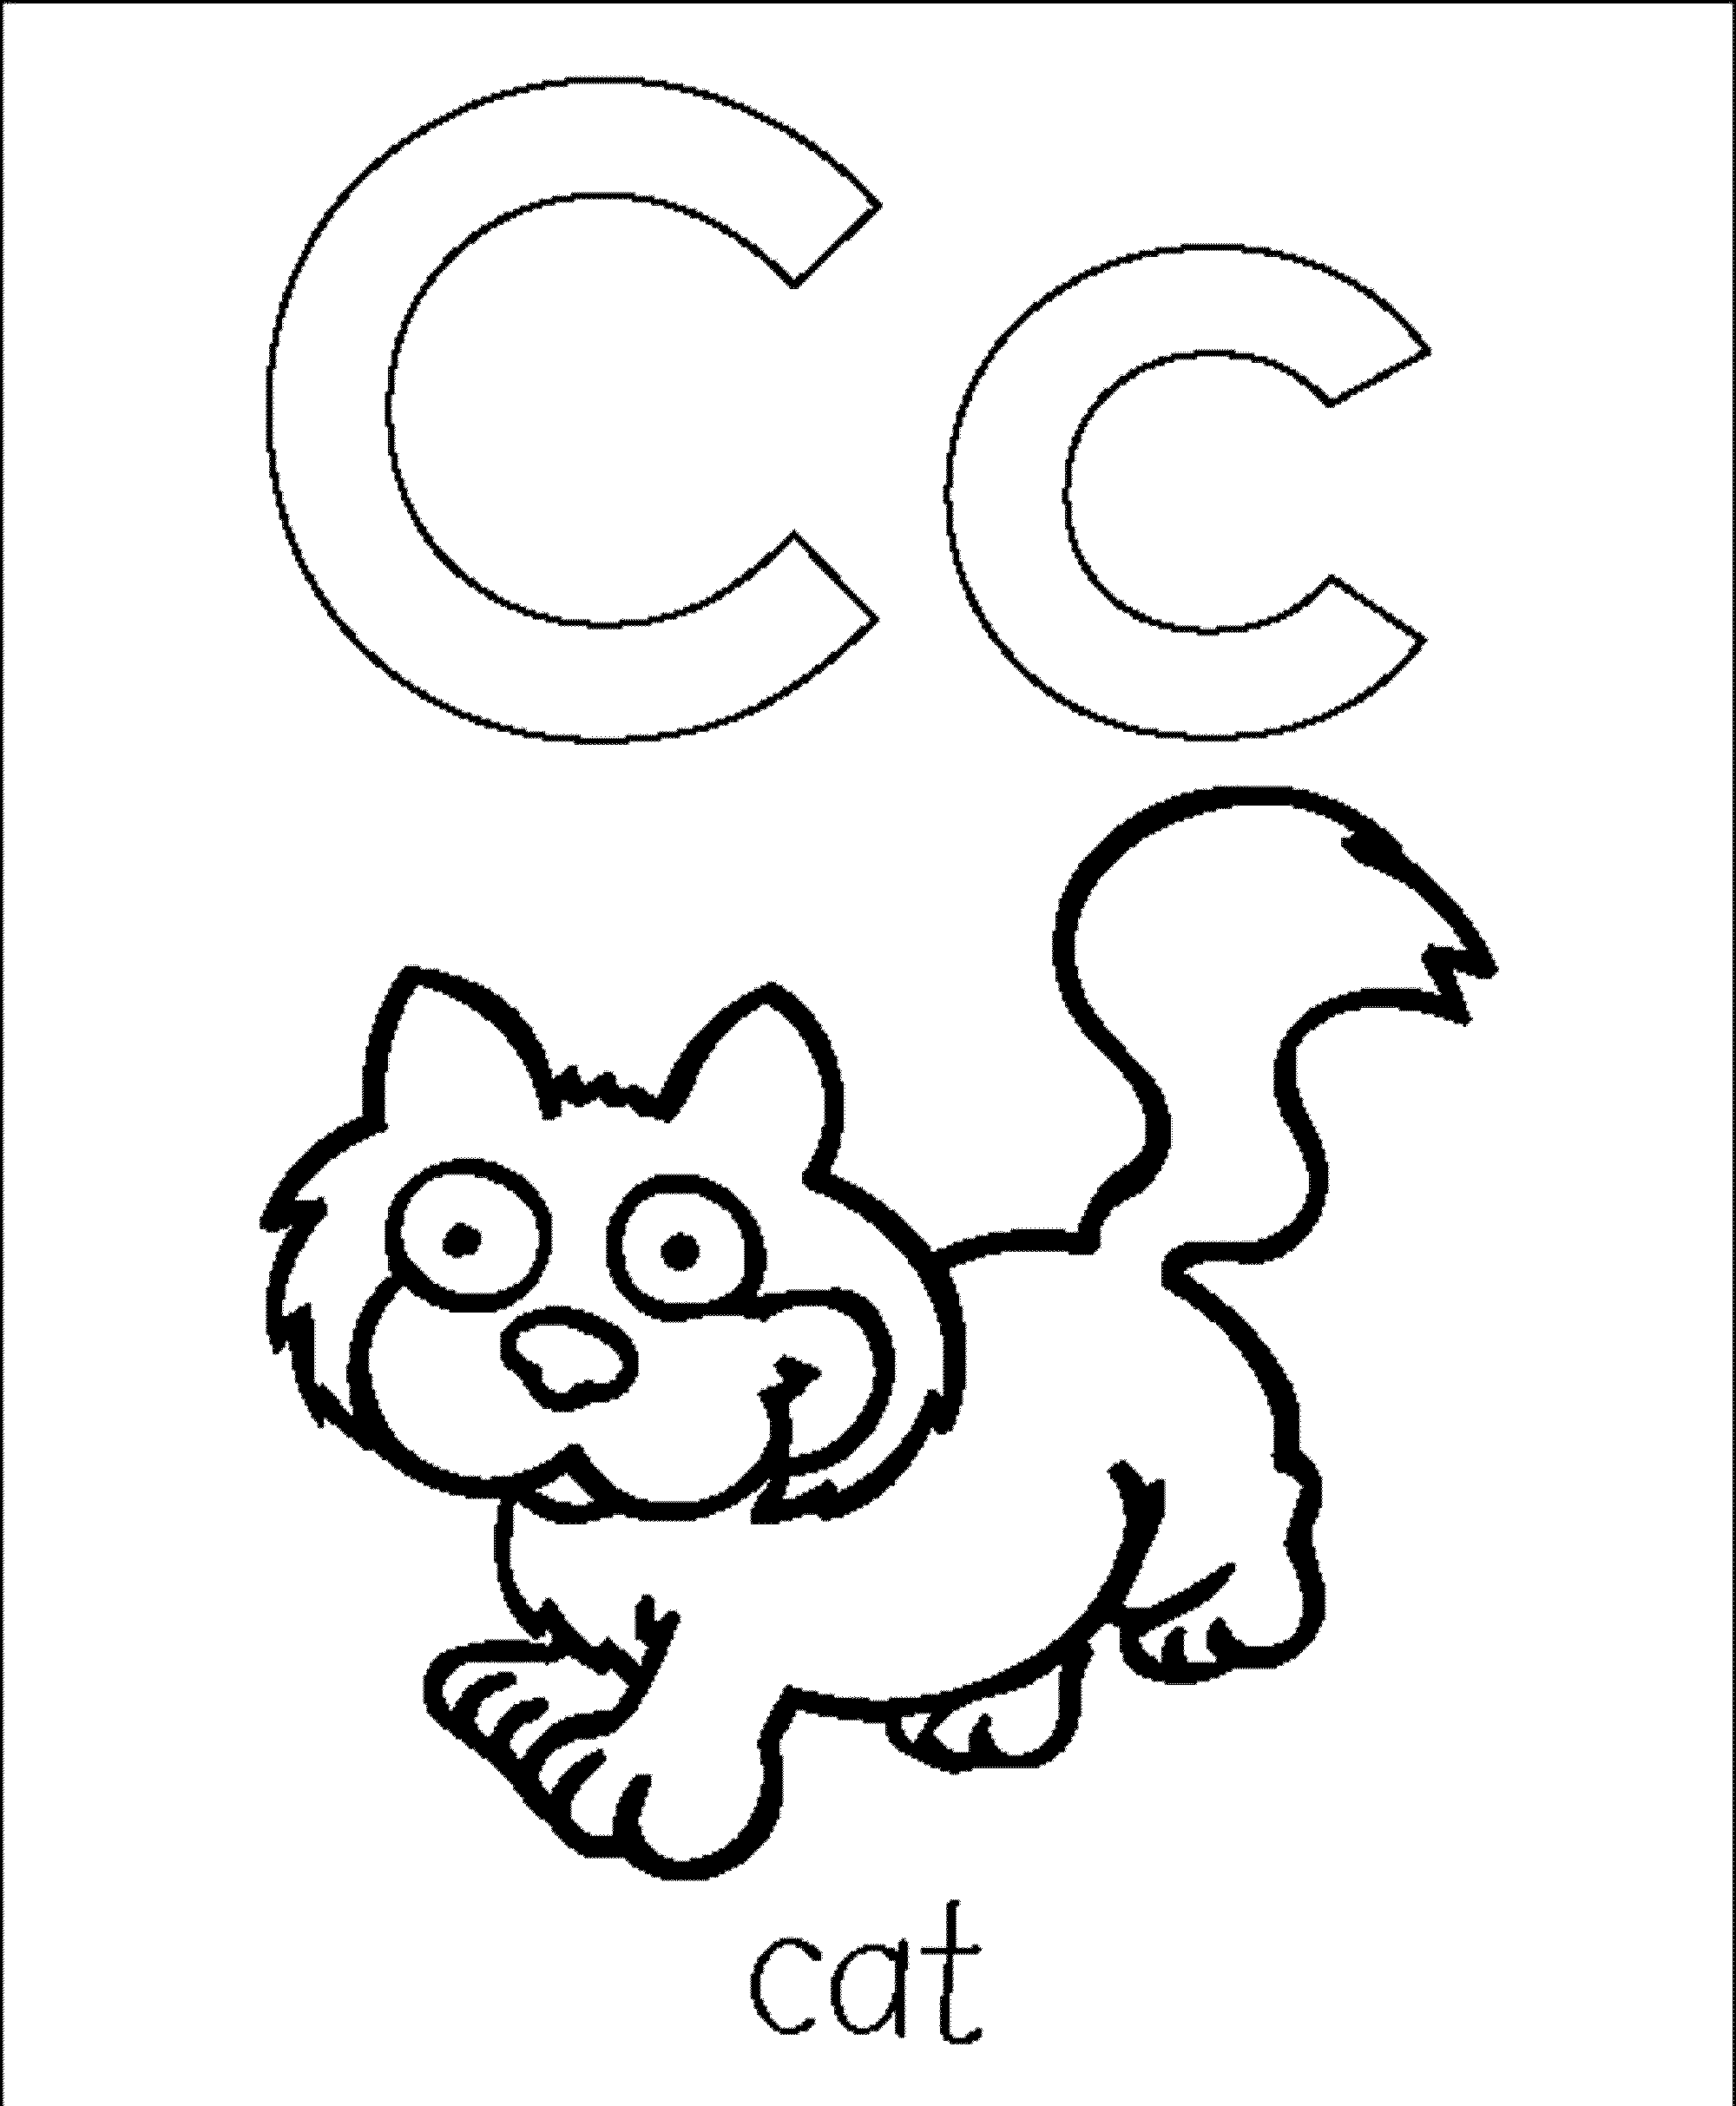 coloring letter c pictures letter c with animals coloring page free printable pictures coloring letter c